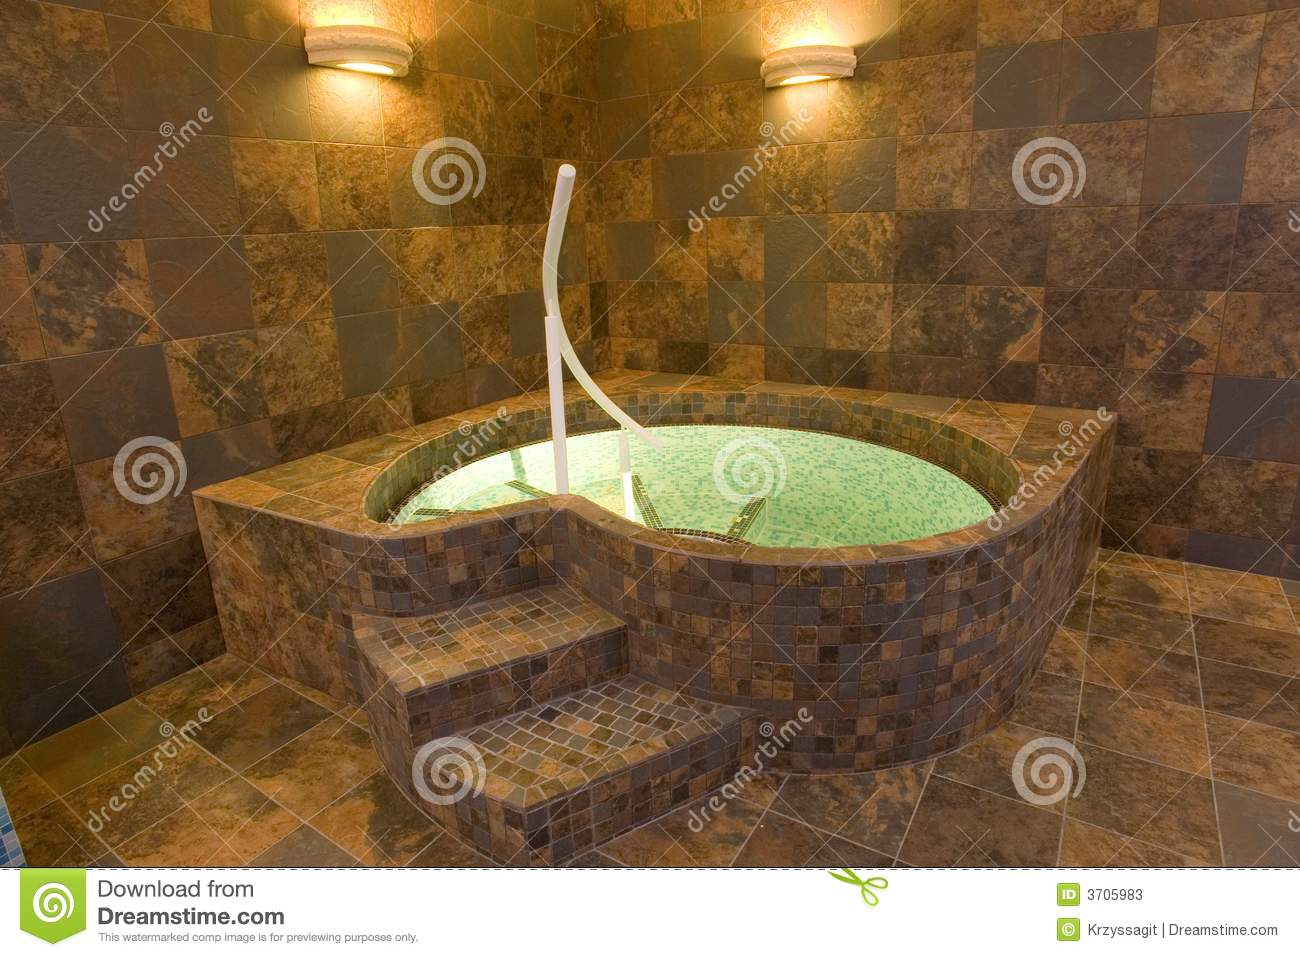 Indoor jacuzzi pool stock image image of decor posh - Jacuzzi para interior ...